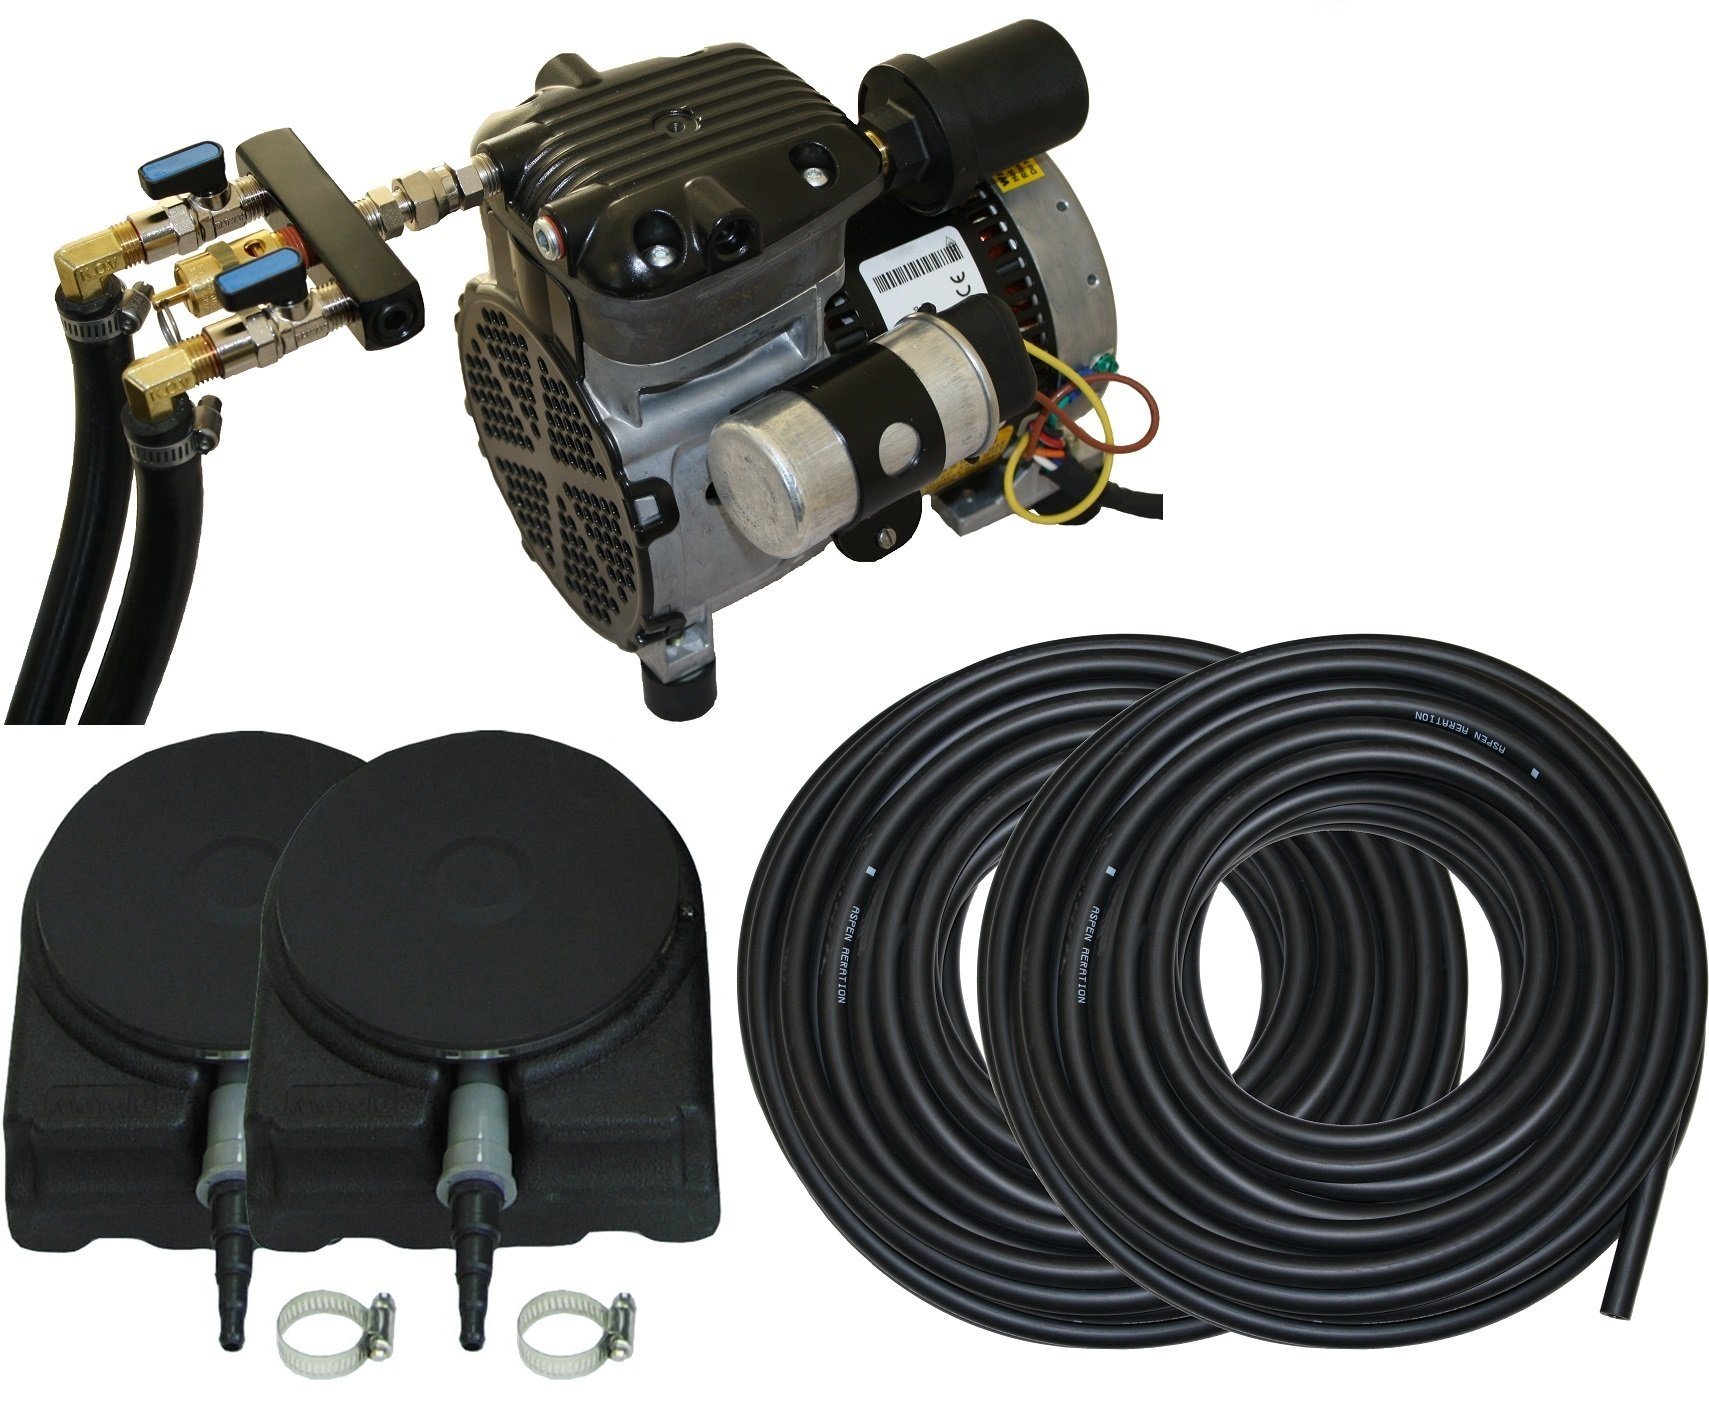 Complete Pond Aeration Kit | Rocking Piston Aerator + 200' of Weighted Tubing + 2 Diffusers (1/4 Hp, No Cabinet) by Aspen Aeration Systems